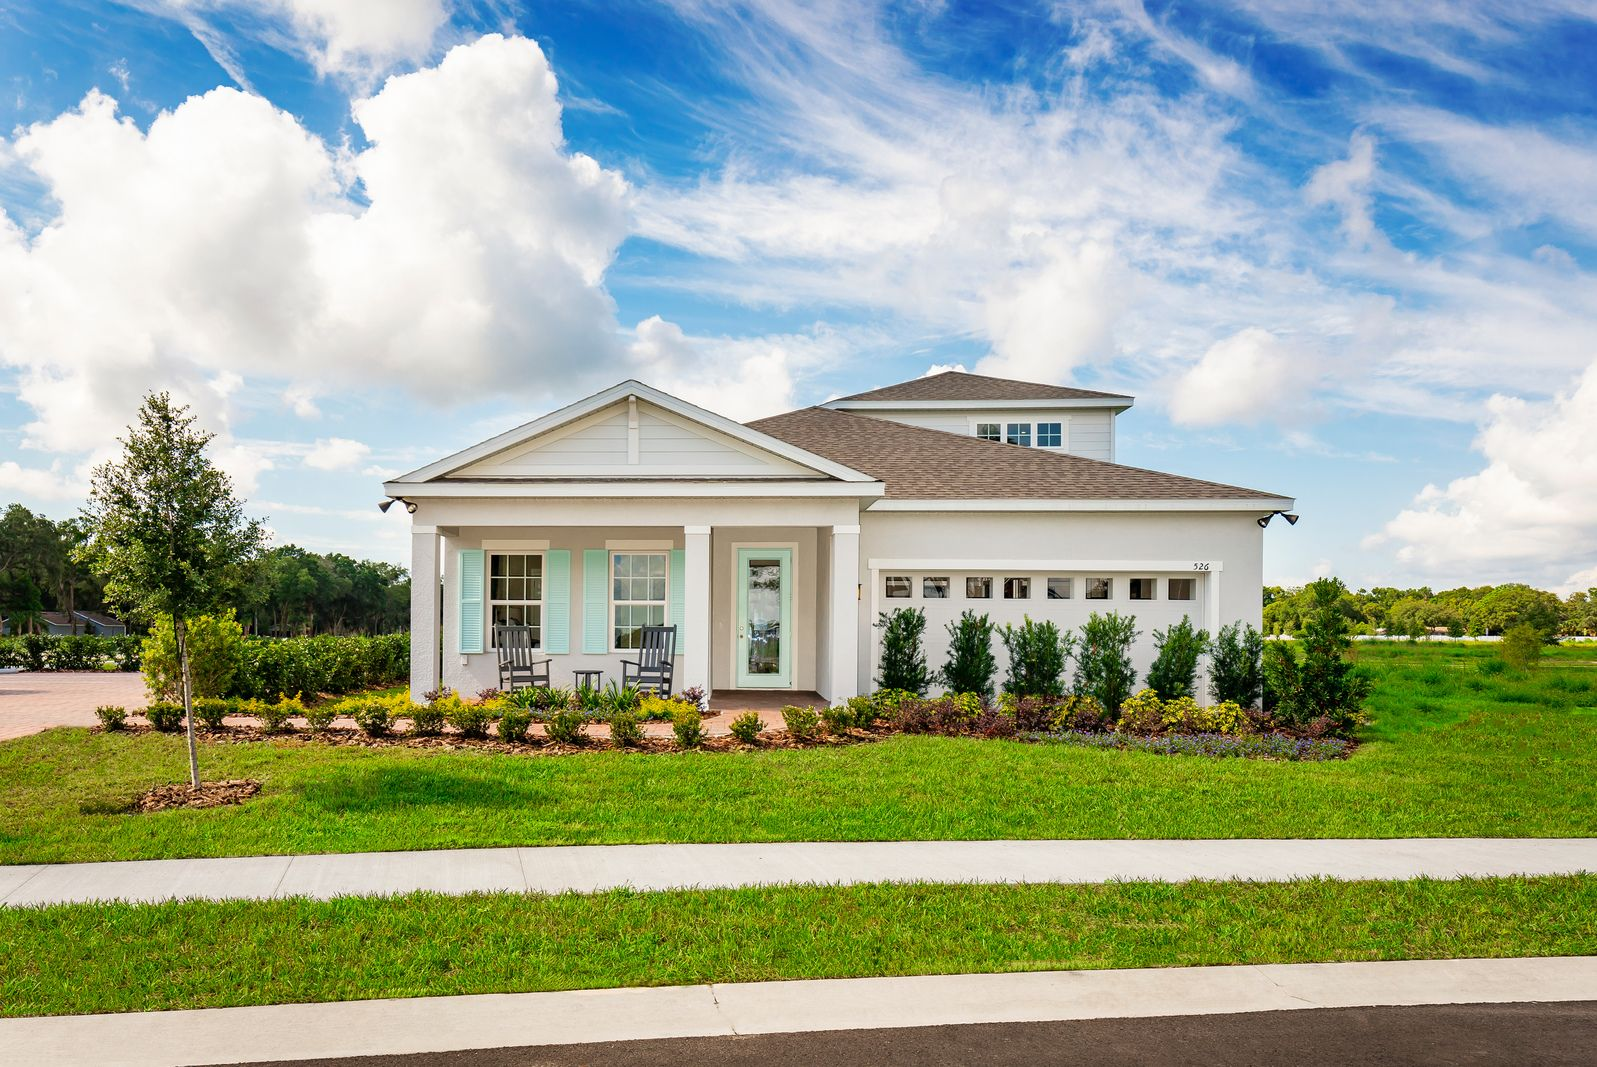 Welcome to Park Meadows!:Due to extremely high demand, we have limited homesite availability. An appointment is required to visit the community.Schedule yours today!